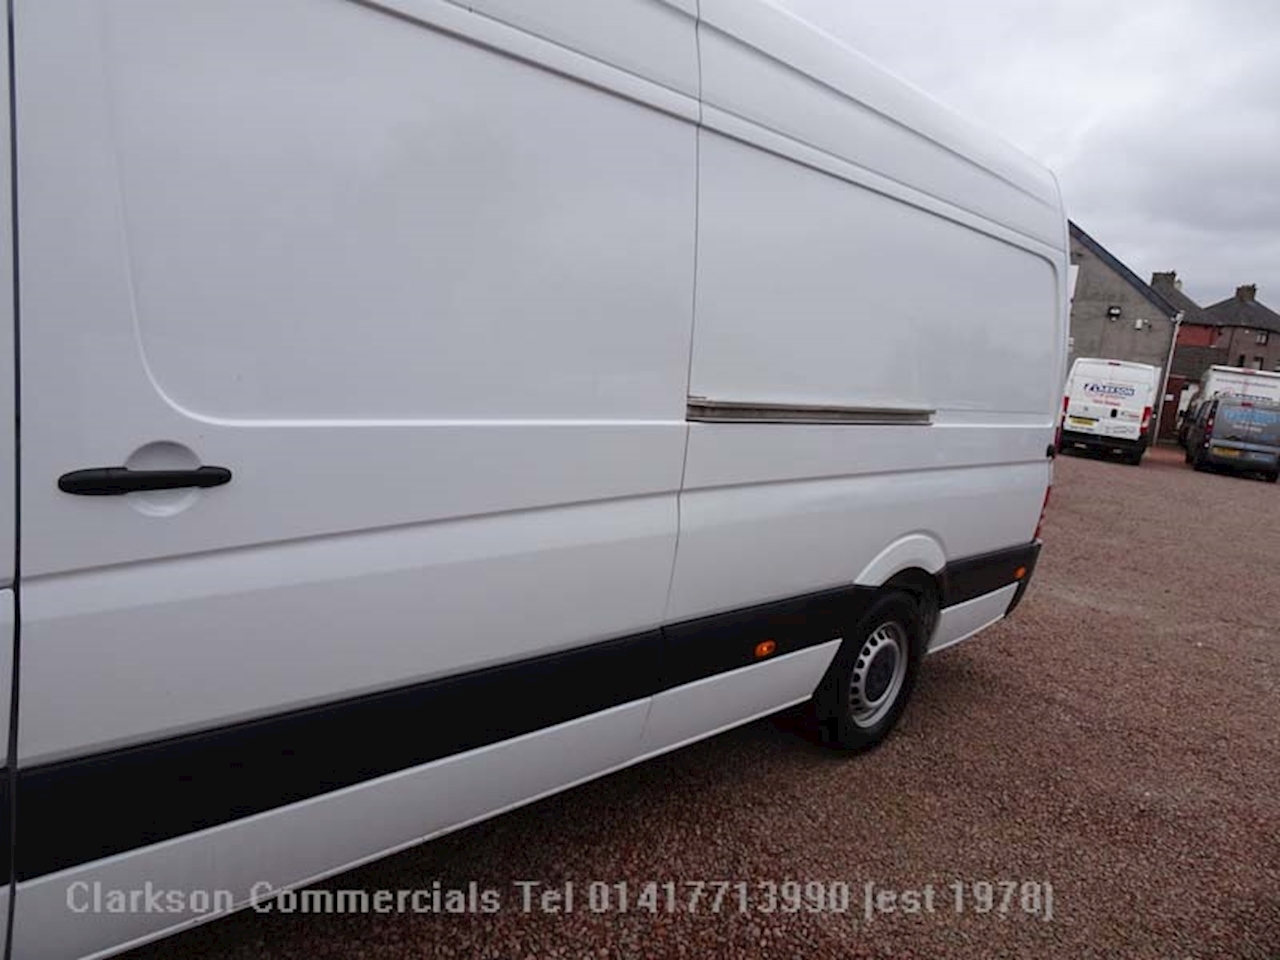 Mercedes-Benz Sprinter 314Cdi 4.0m long wheel wheelbase 2.1 Panel Van Manual Diesel